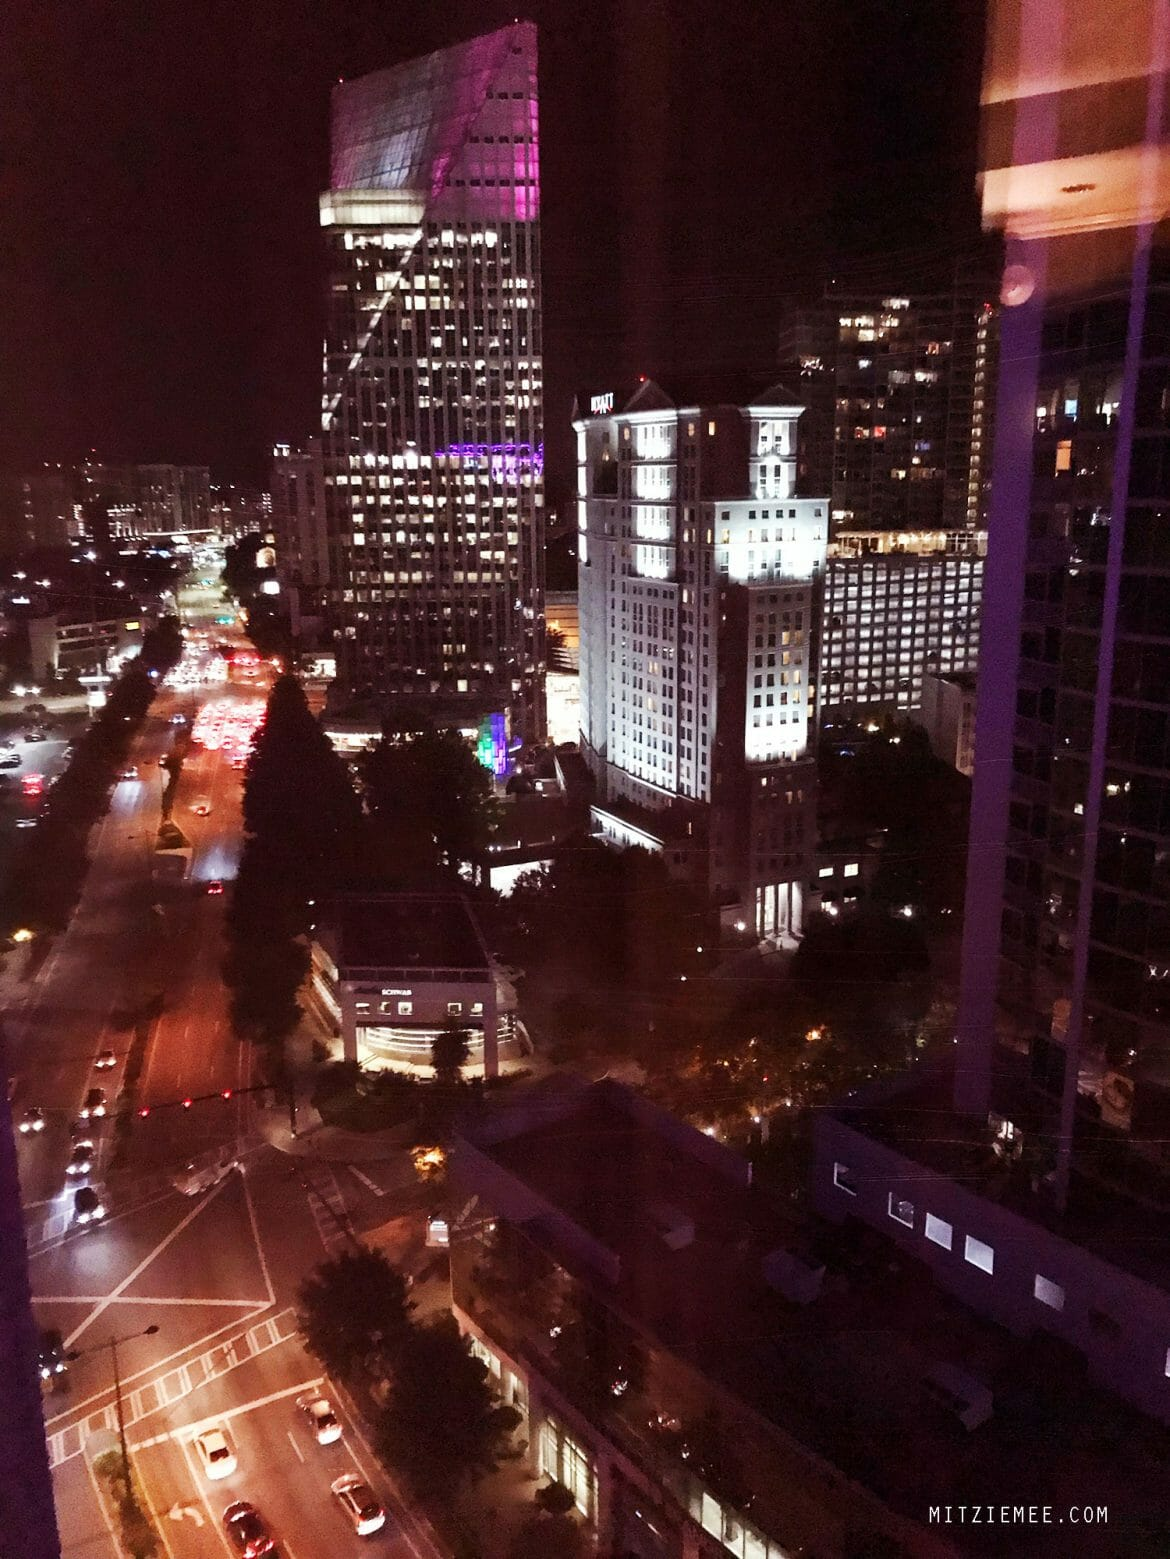 View from the lounge at InterContinental in Buckhead, Atlanta